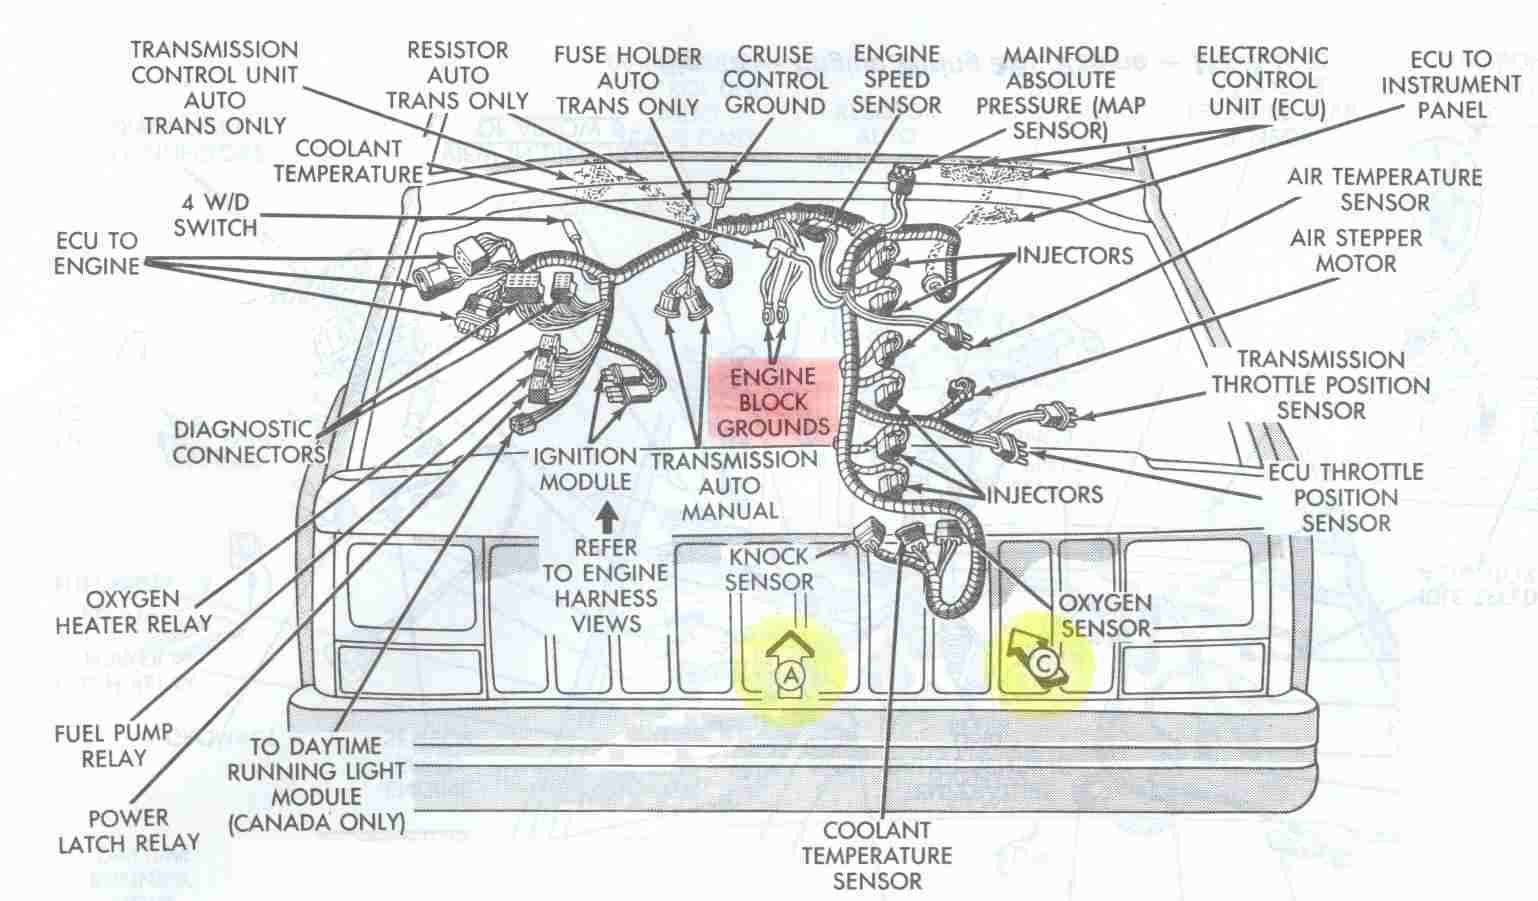 Engine Bay Schematic Showing Major Electrical Ground Points For 40l 100 Johnson Wiring Harness Diagram Jeep Cherokee Engines